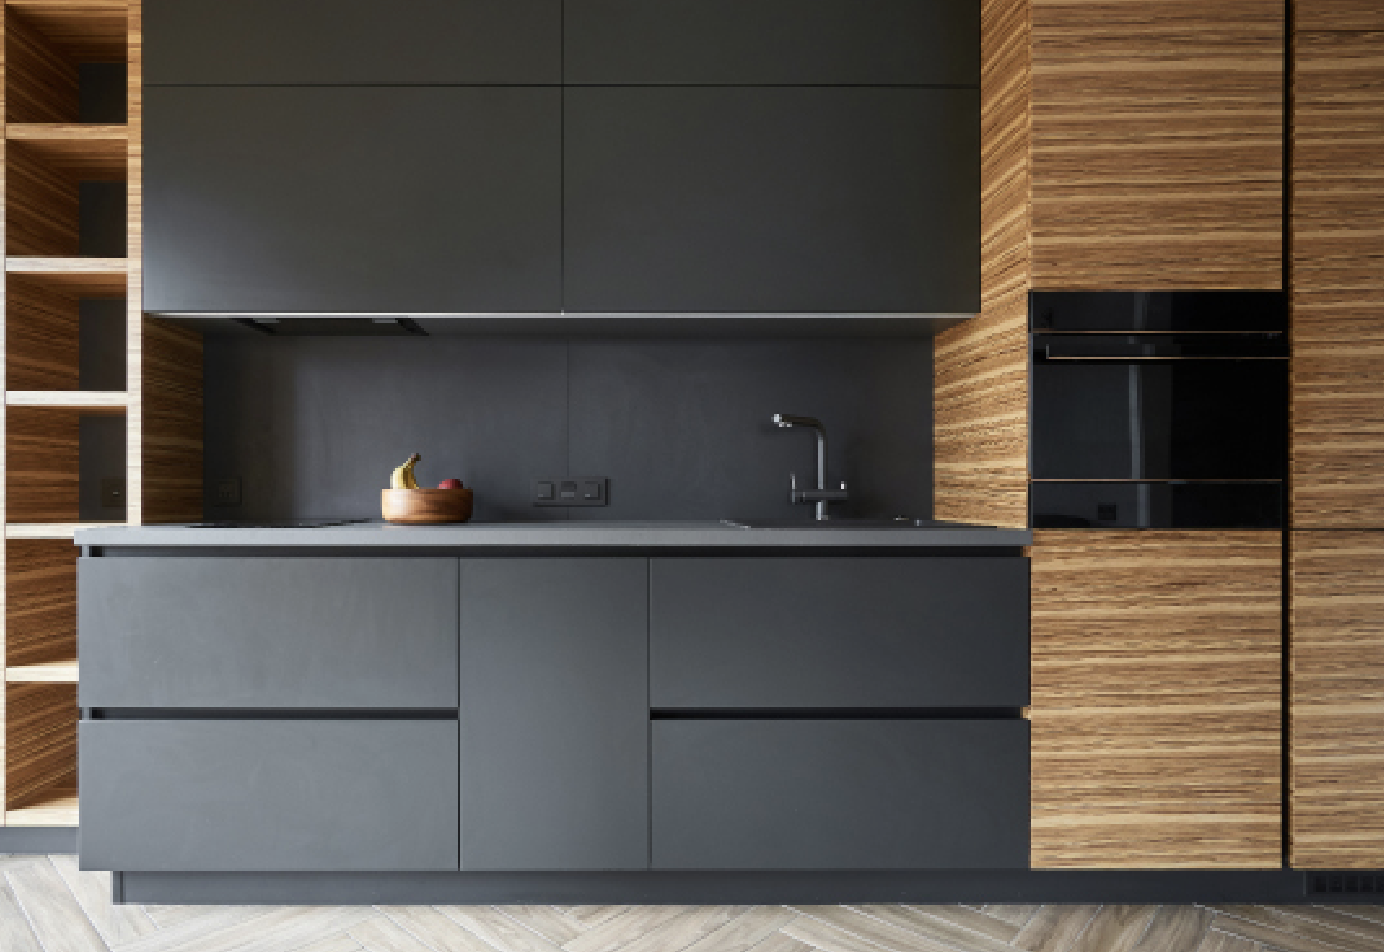 LATEST KITCHEN DESIGN TRENDS FOR 2021